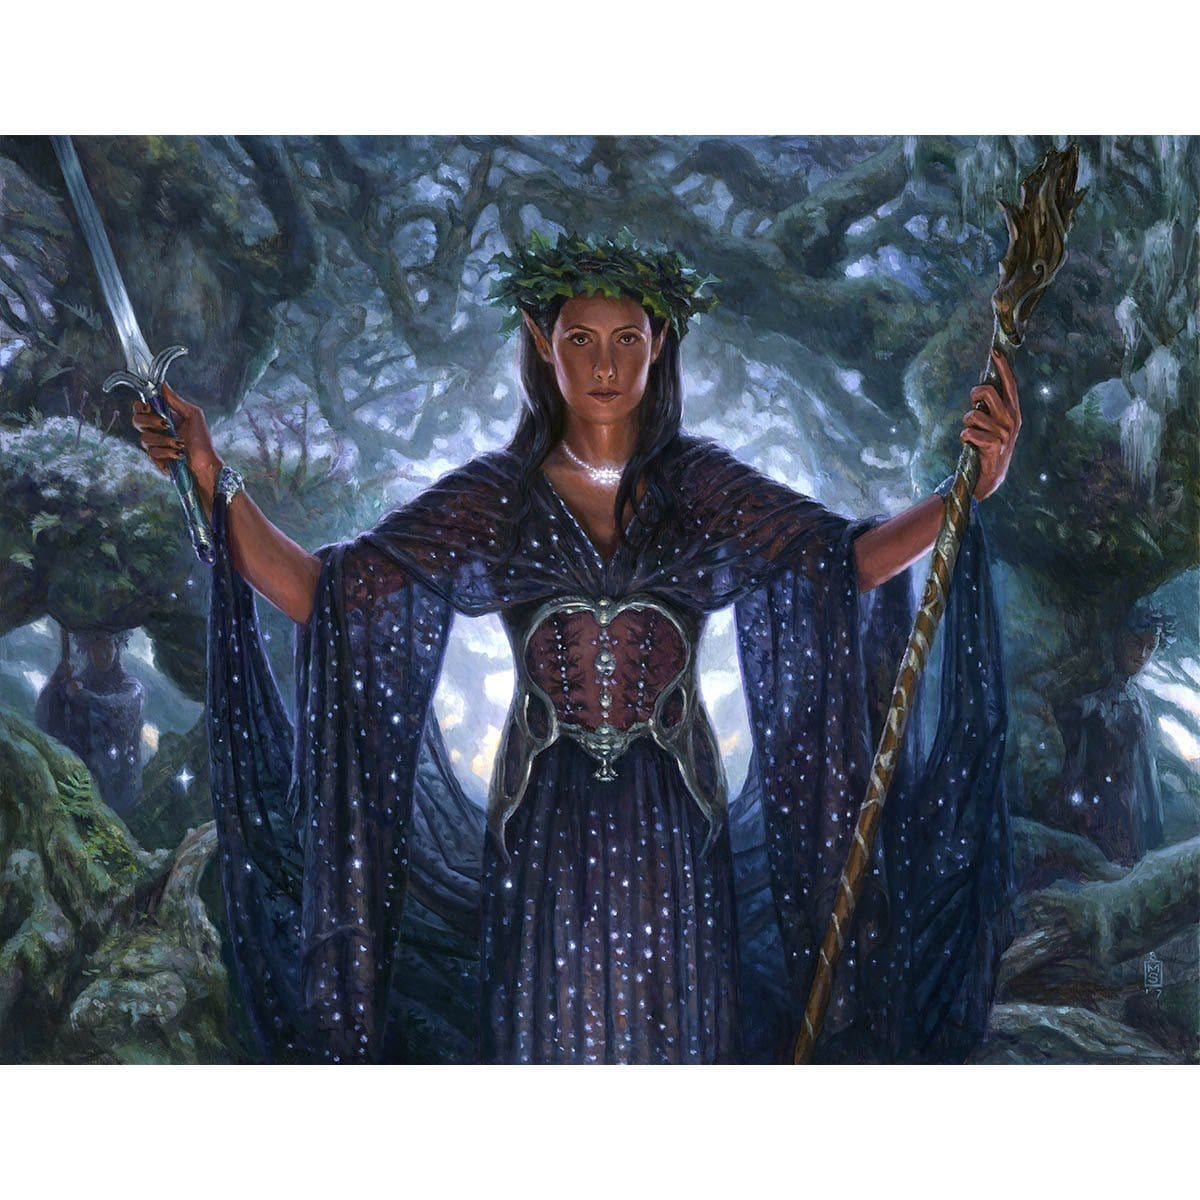 Elvish Clancaller Print - Print - Original Magic Art - Accessories for Magic the Gathering and other card games